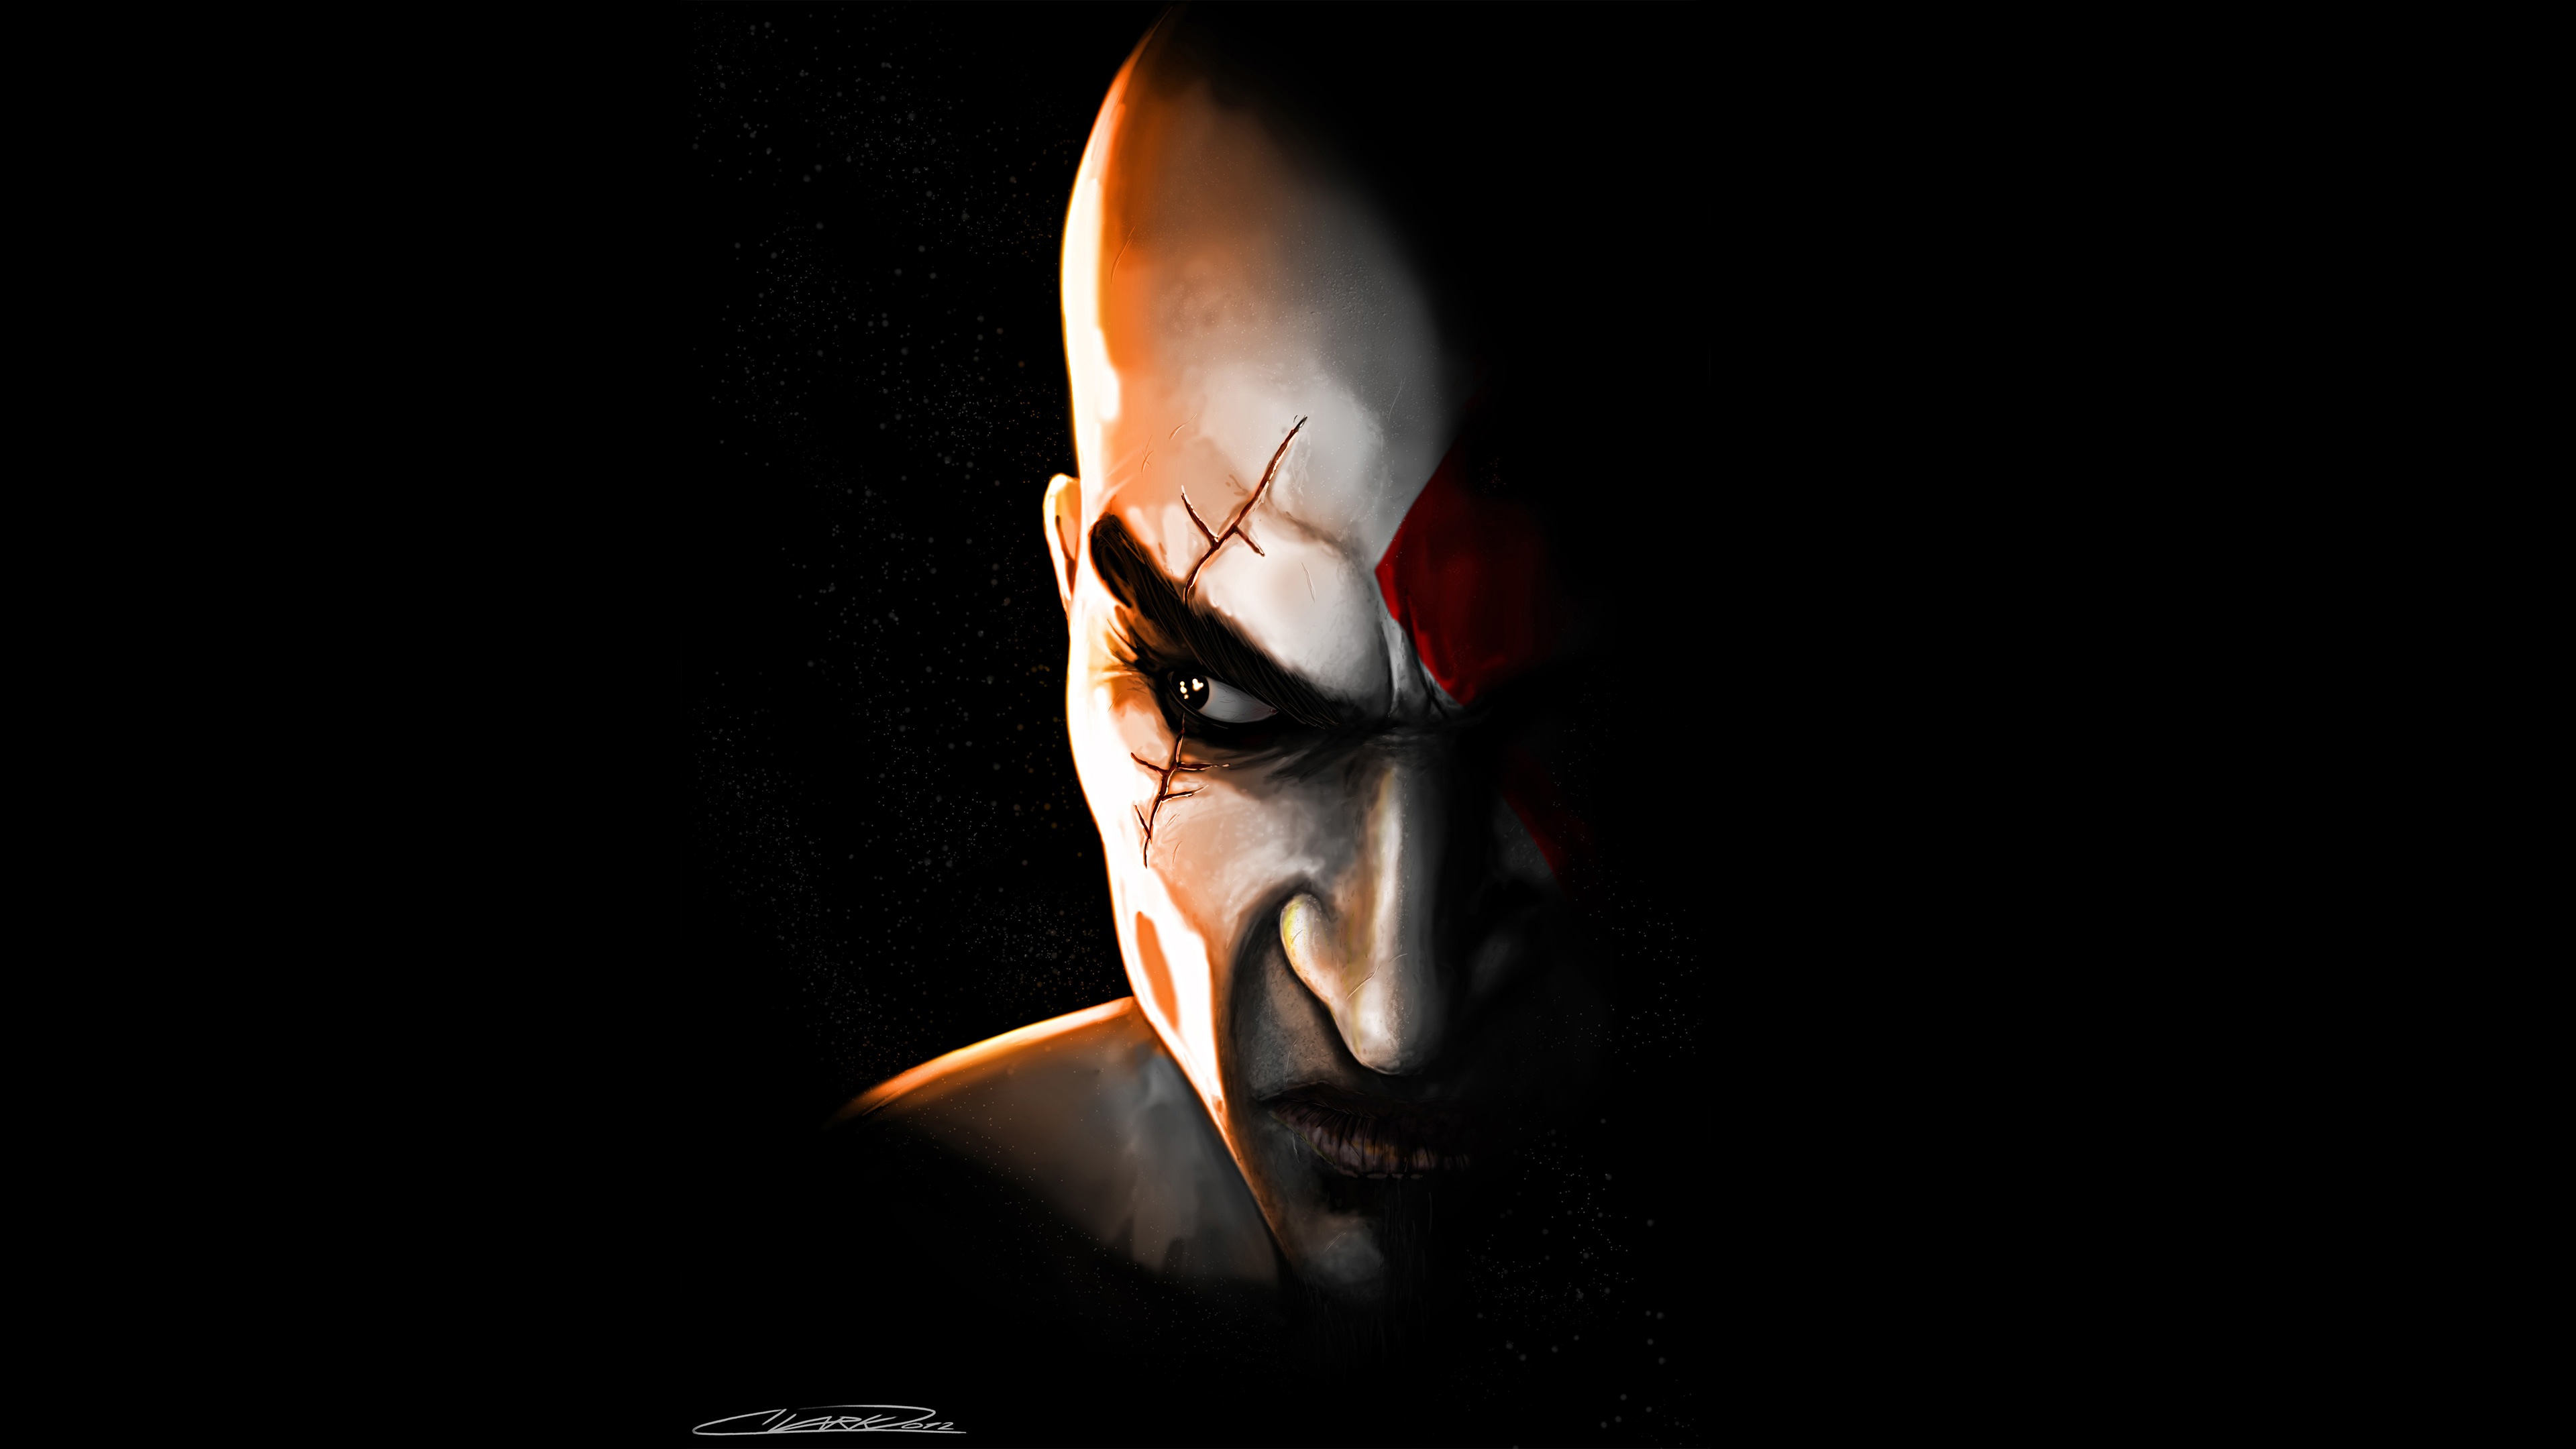 Kratos in god of war game hd games 4k wallpapers images - 4k wallpaper of god ...